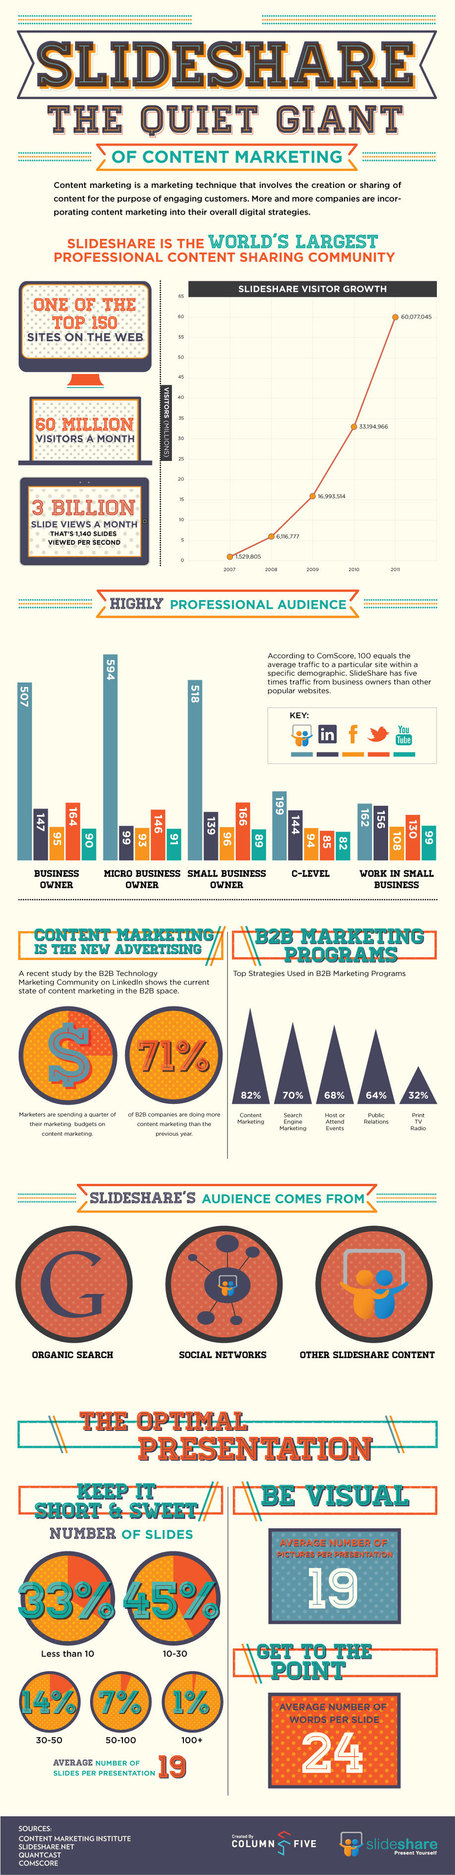 Slideshare Infographic: The Quiet Giant of Content Marketing | SM | Scoop.it